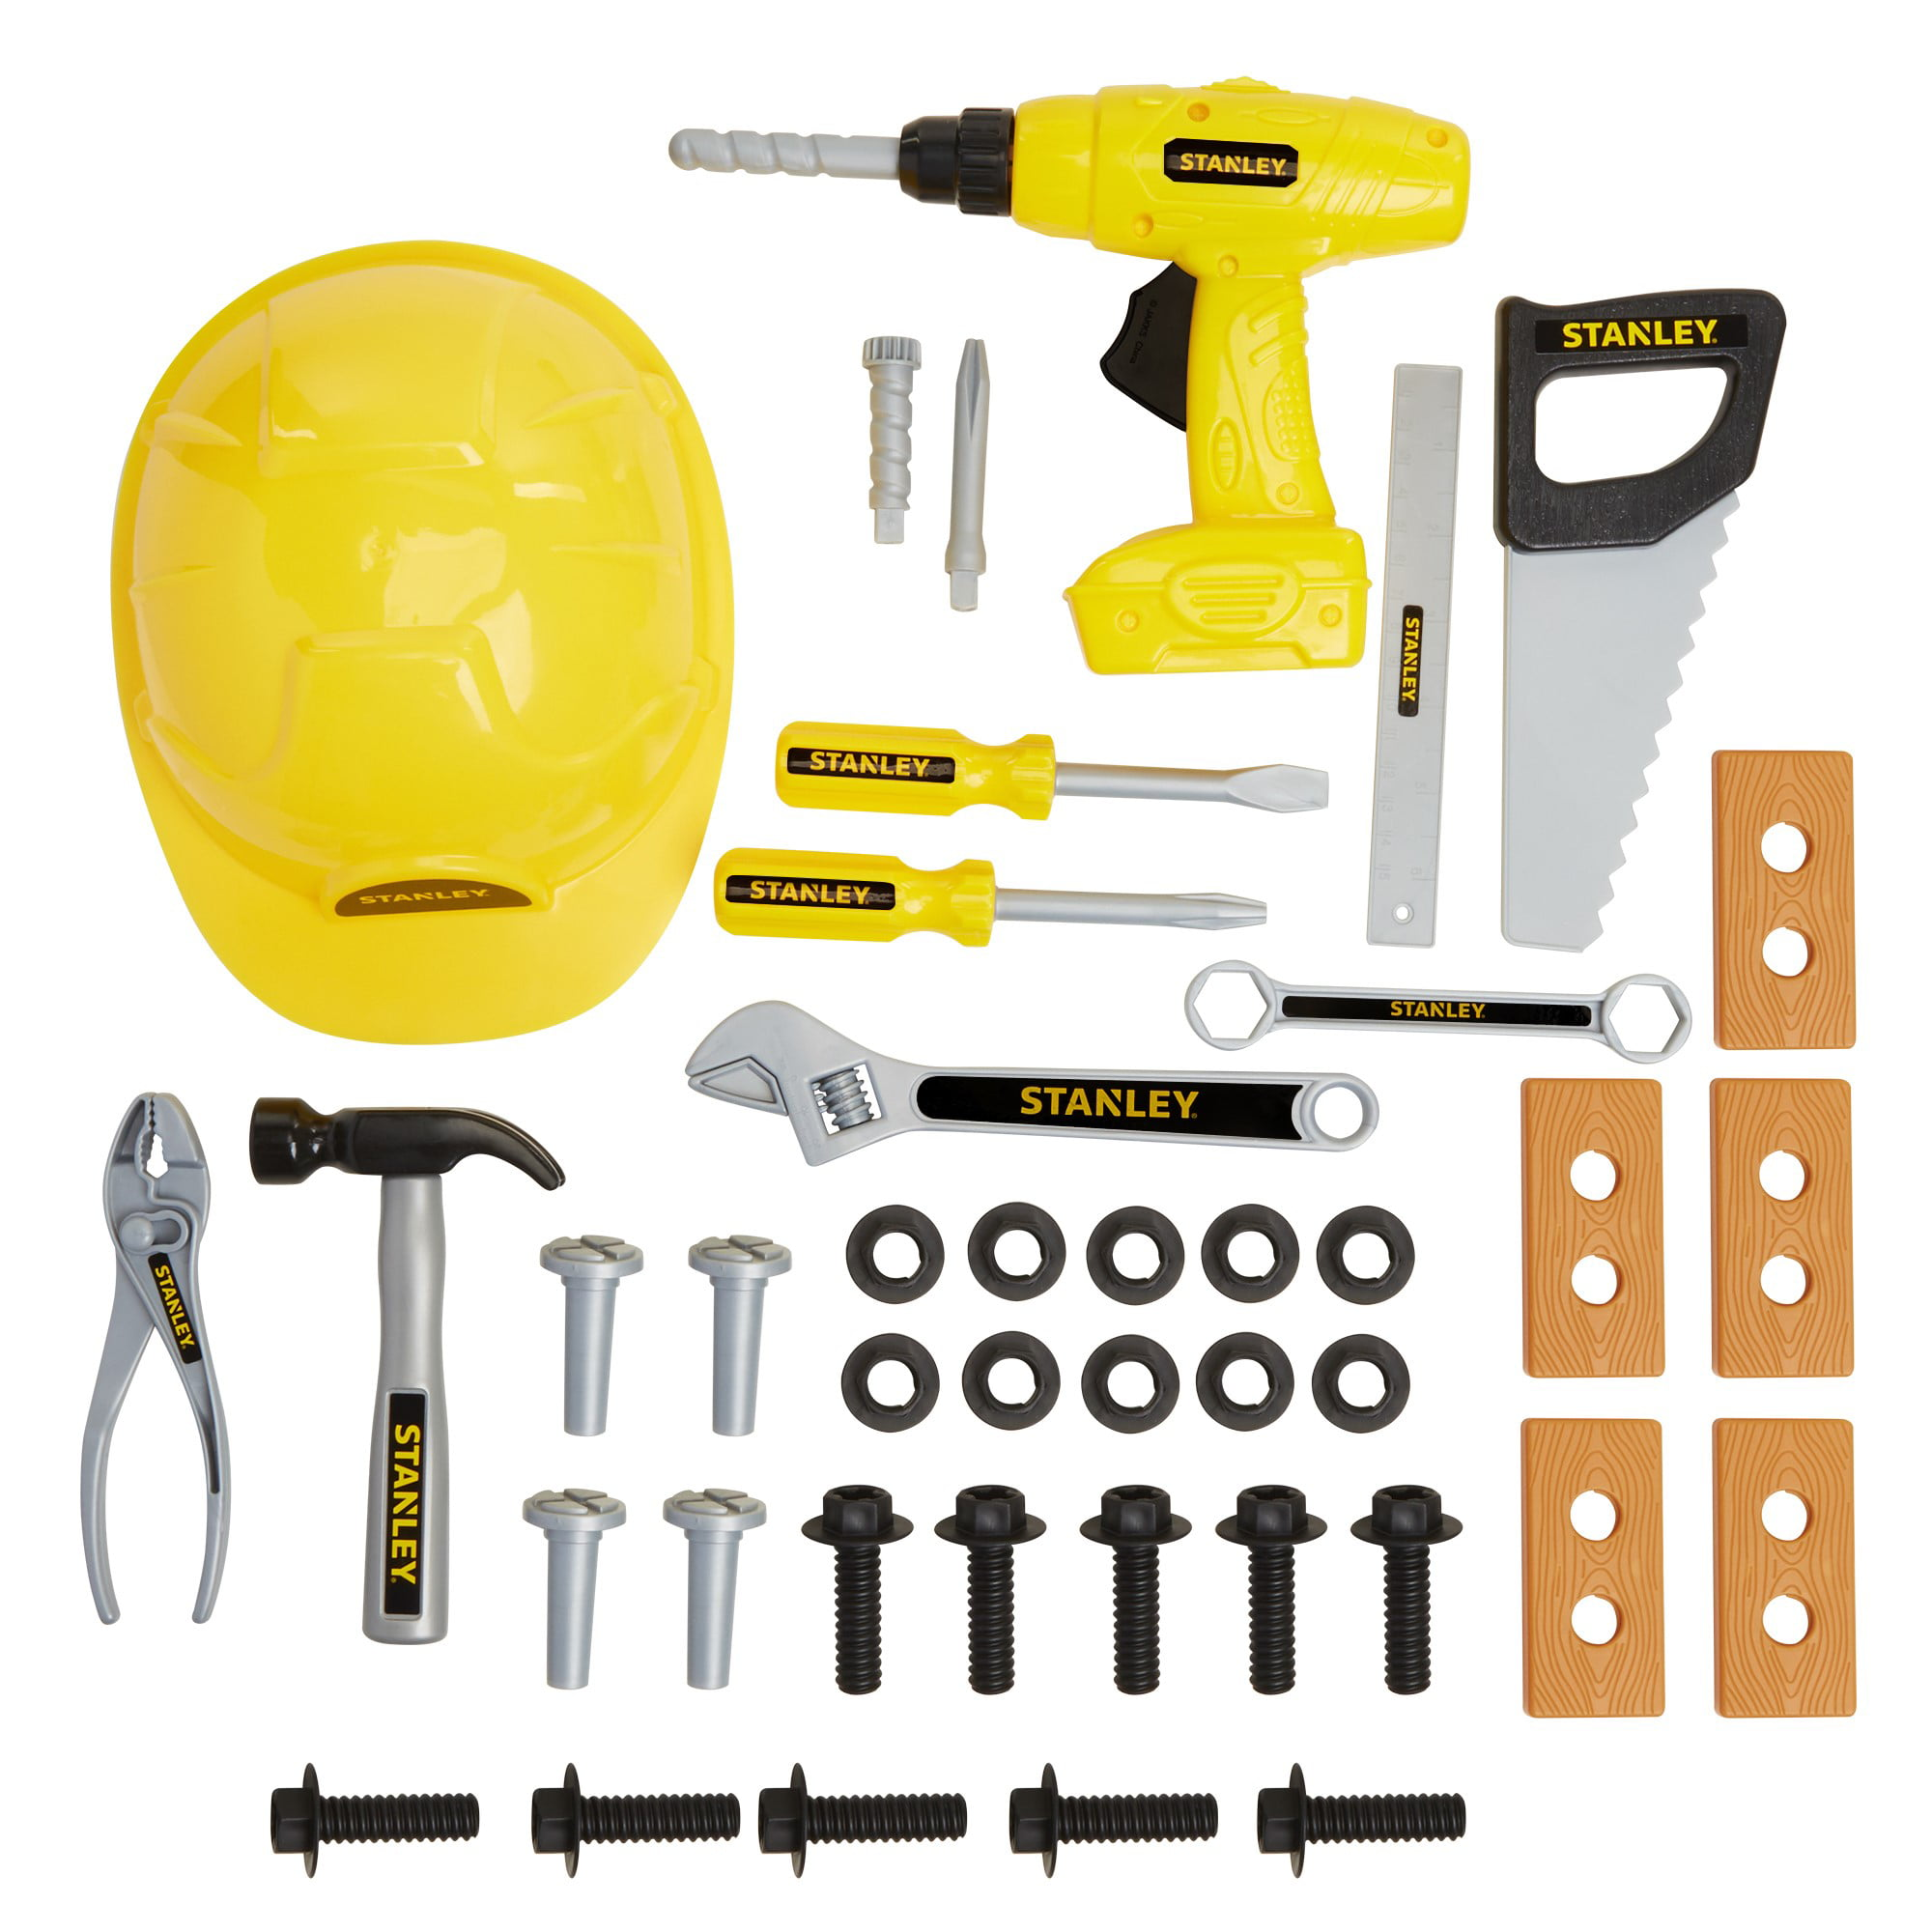 Stanley Jr. Mega Tool Set